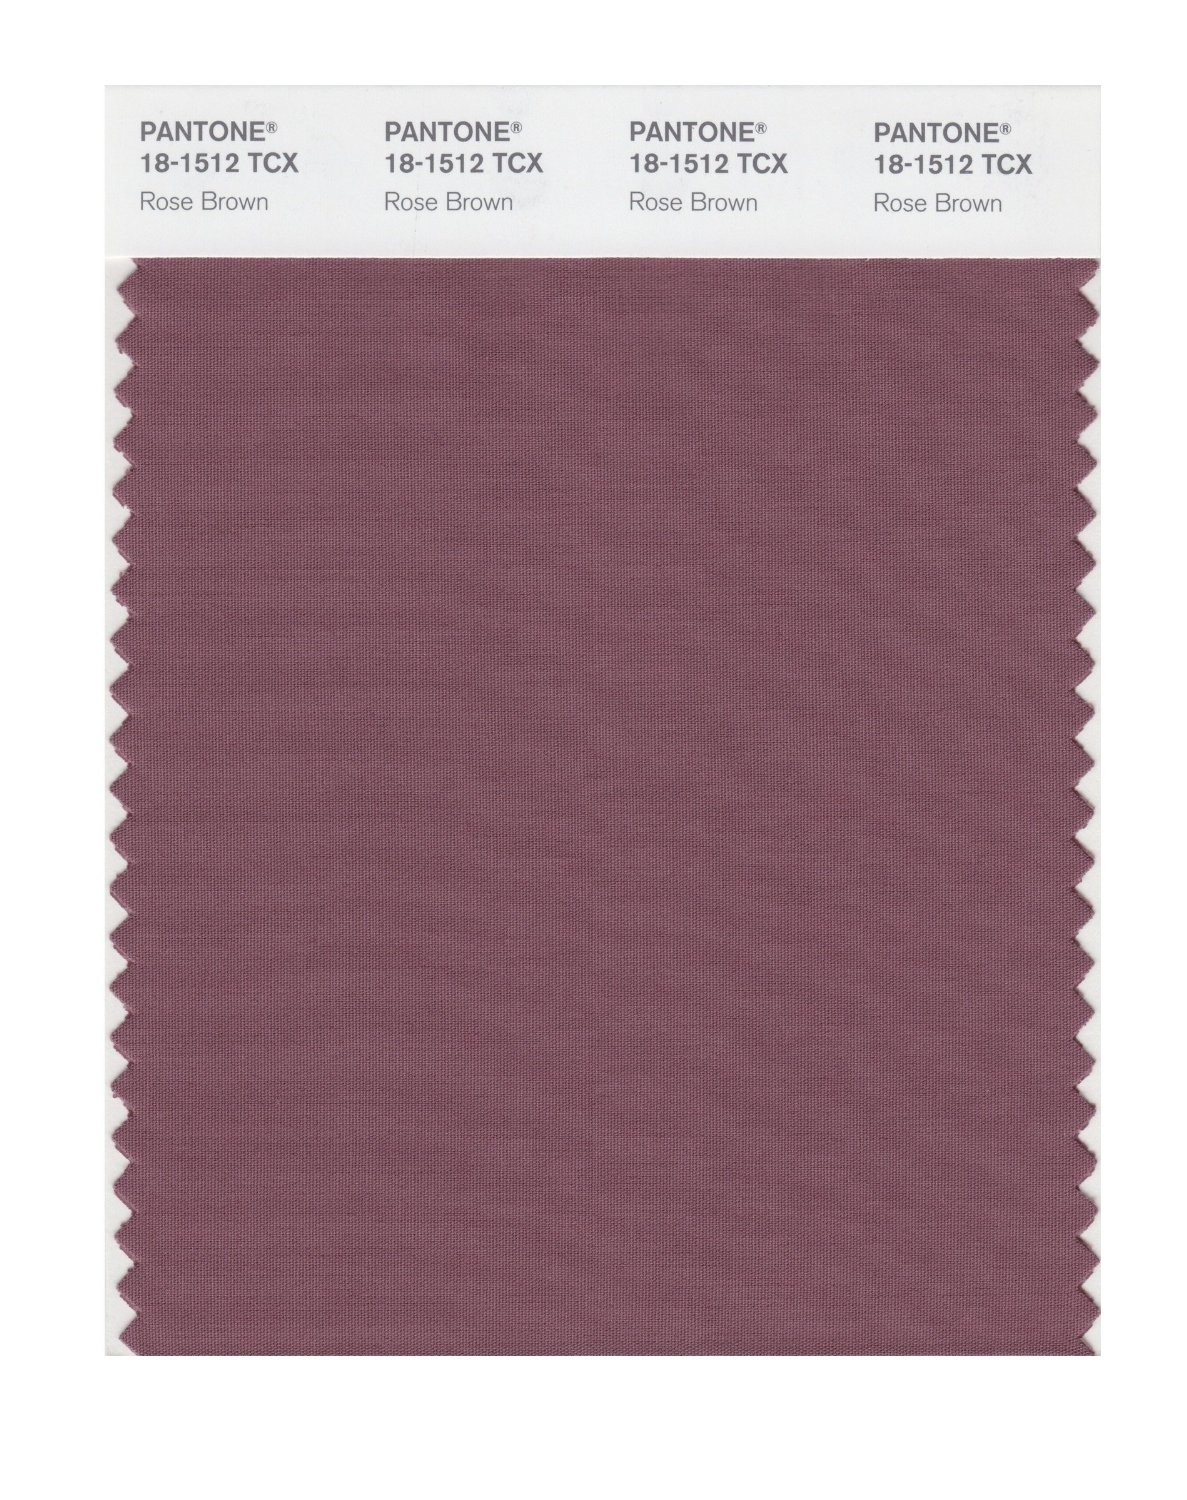 Pantone Smart Swatch 18-1512 Rose Brown